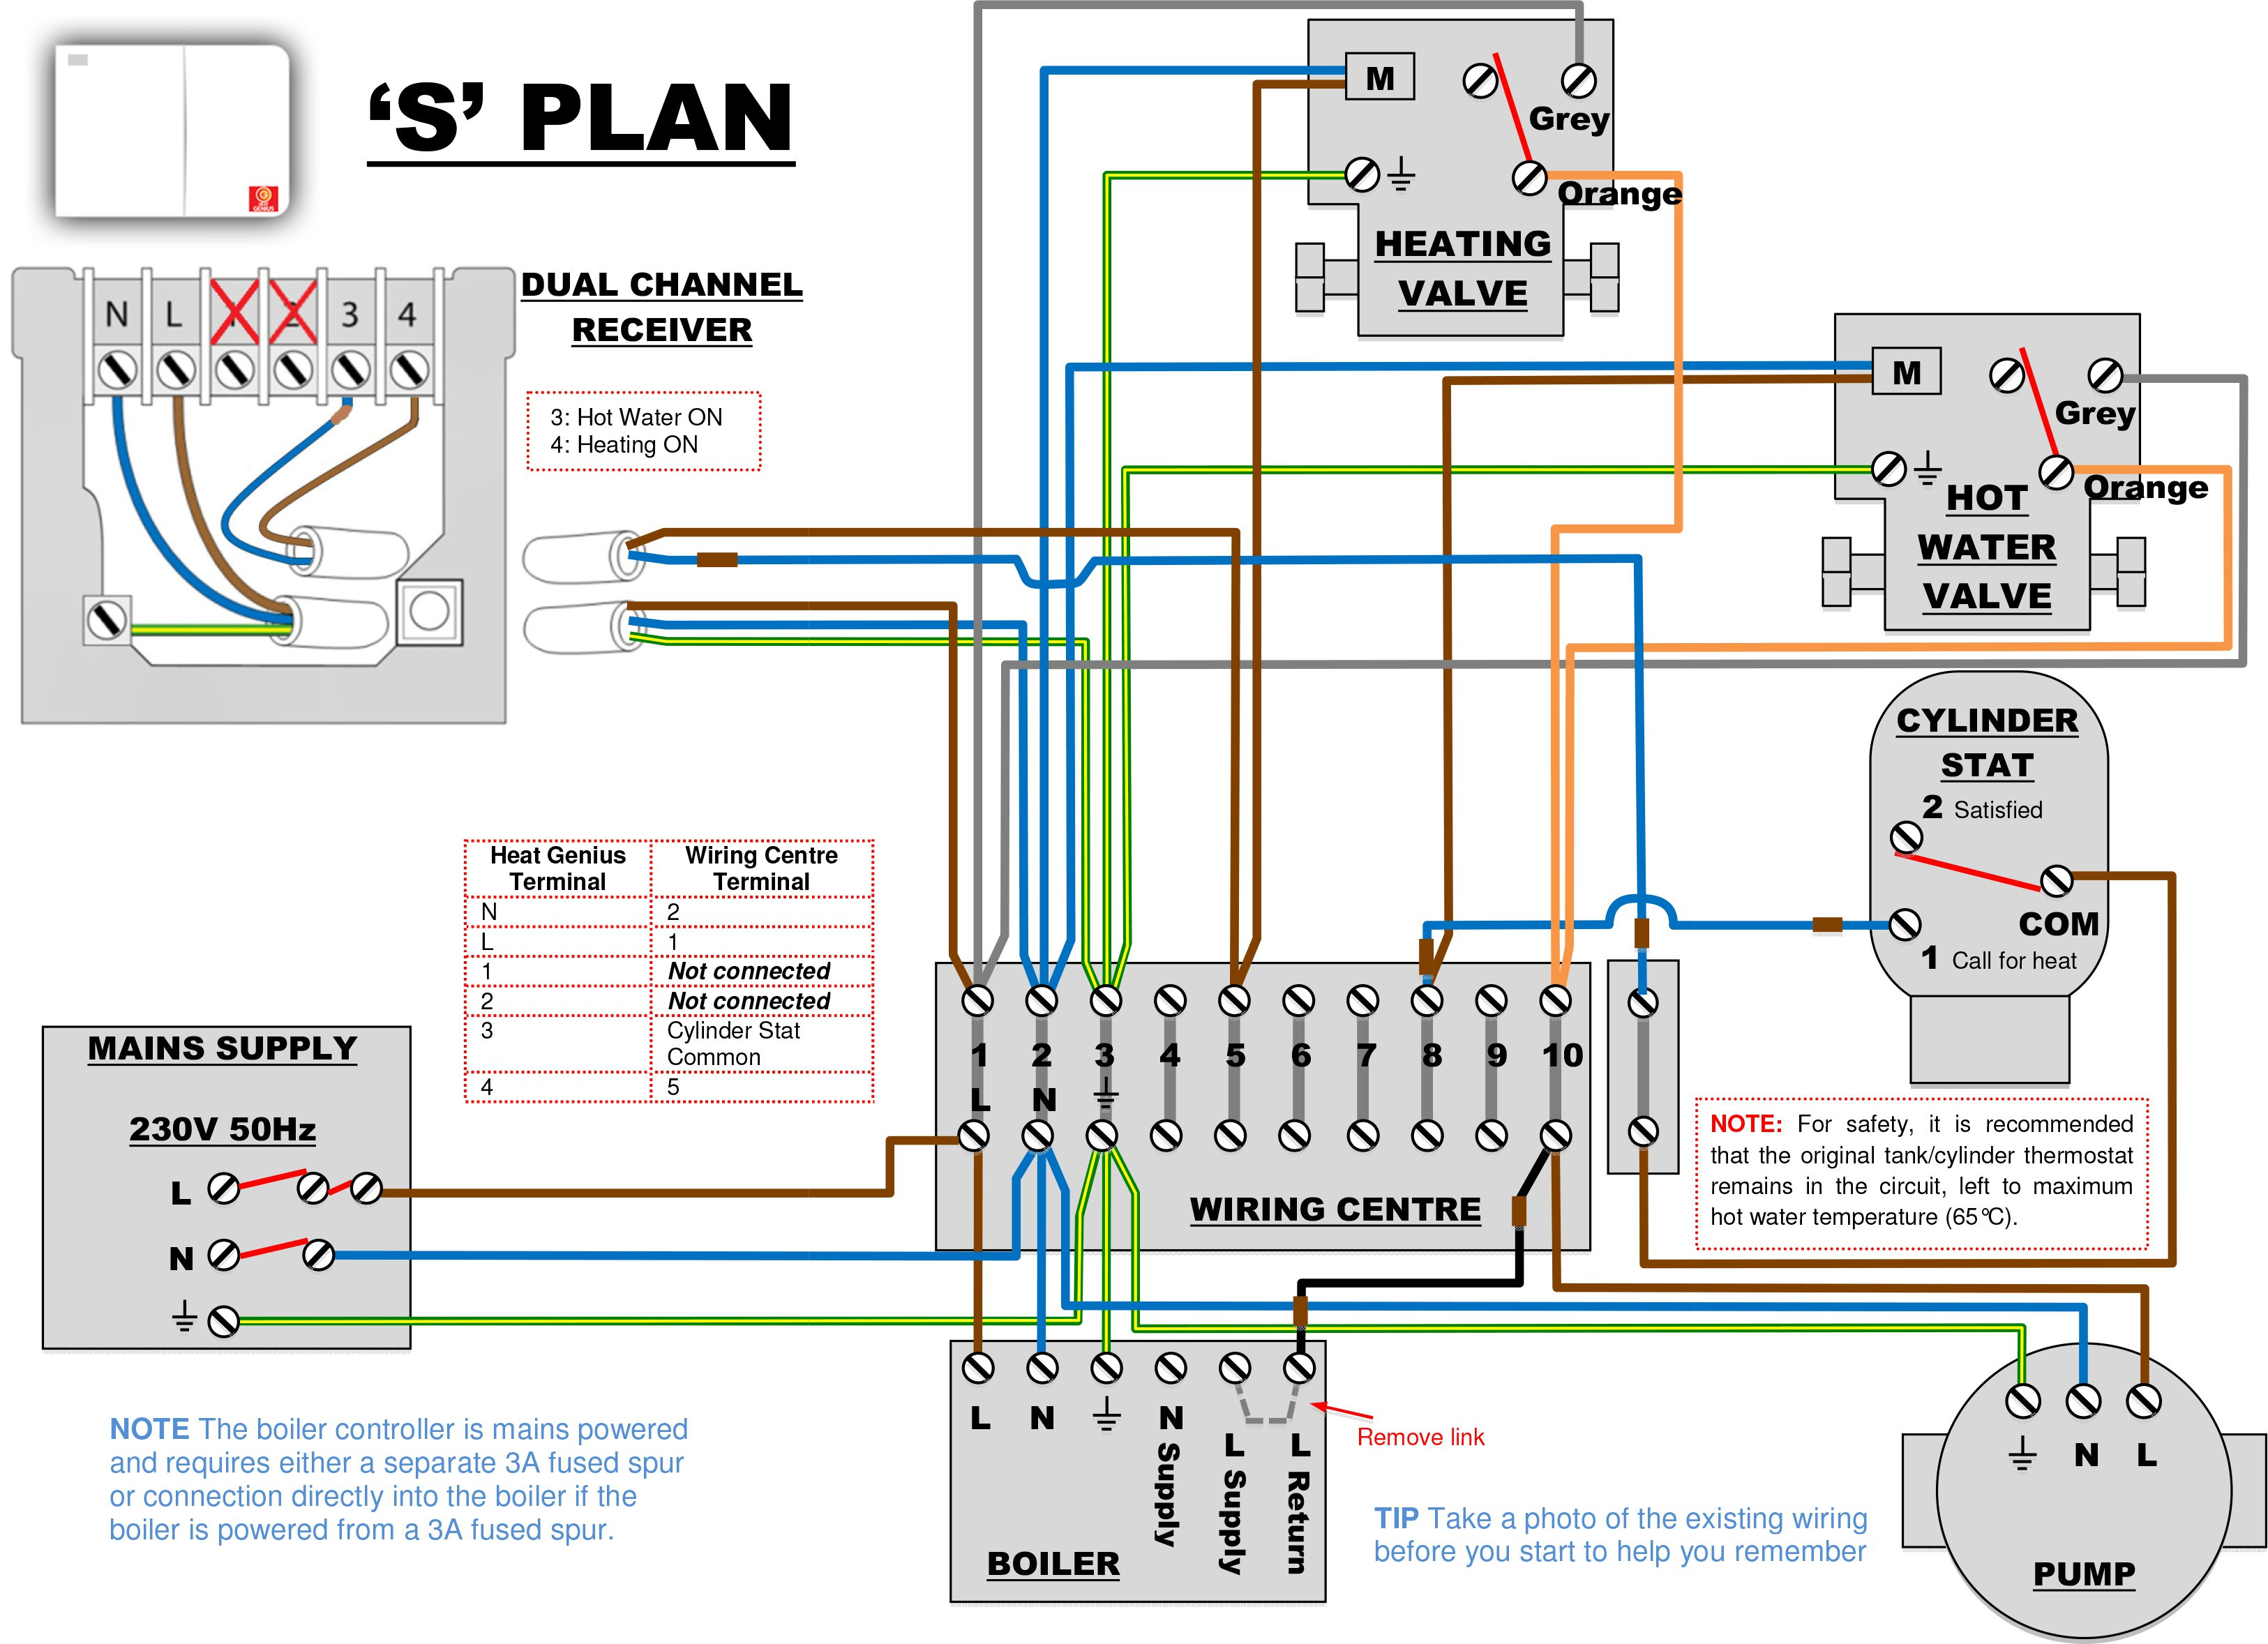 Nest T Stat Wiring Diagram | Wiring Diagram - Nest Thermostat Base Wiring Diagram